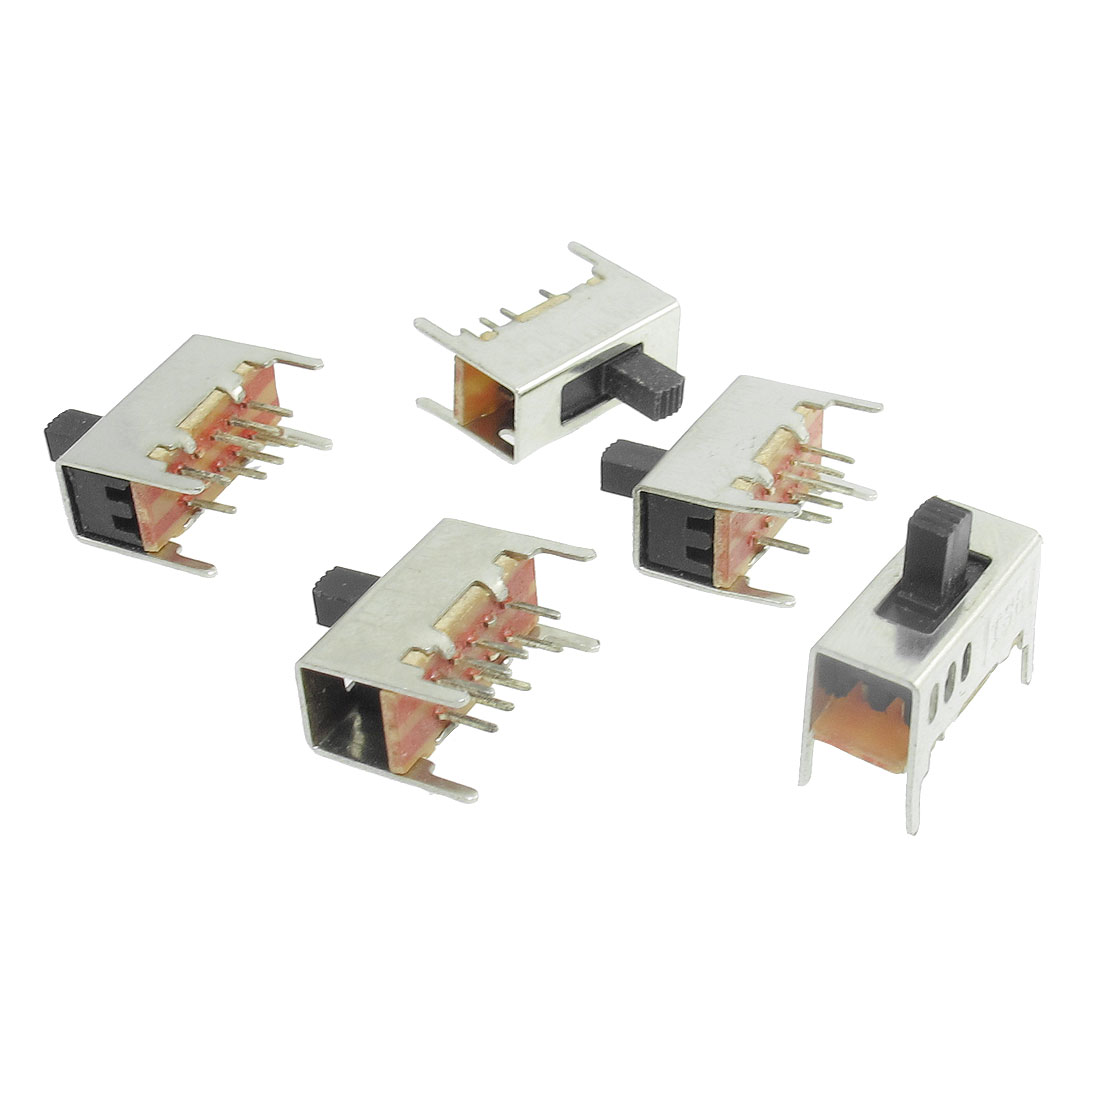 5 Pcs 8 Pins 3 Positions 3P2T On/On/On Mini Slide Switch